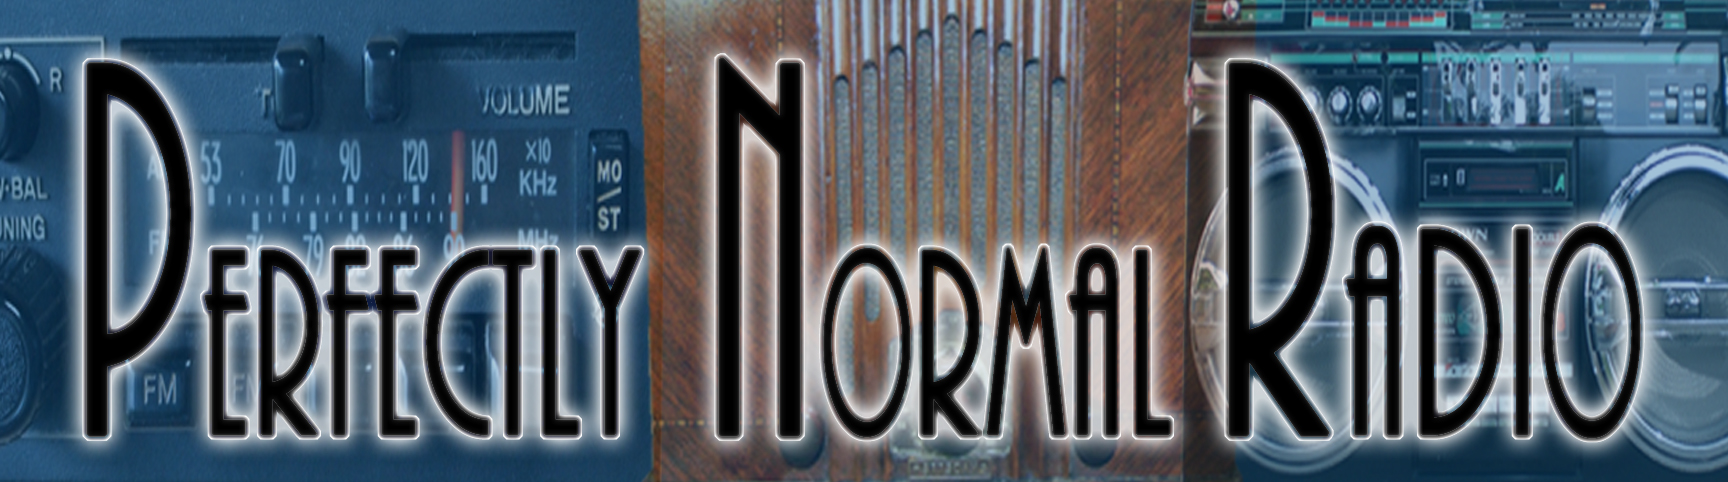 Perfectly Normal Radio Header